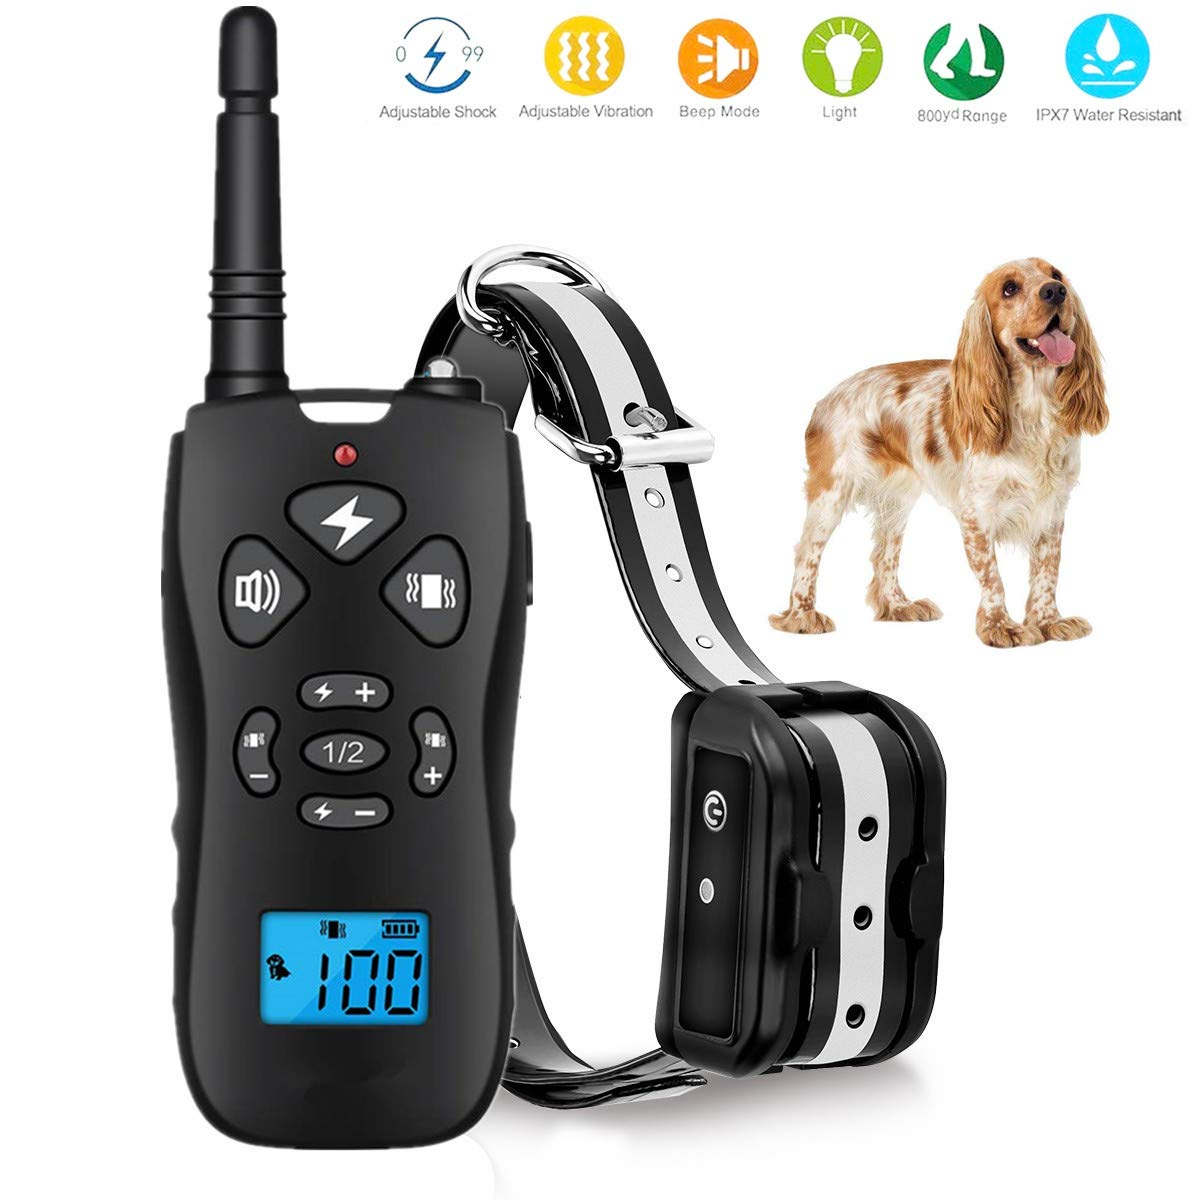 TEMEISI Dog Training Collar,Dog Shock Collar with Remote,with Beep/Vibration/Electric Shock/Light Modes,100% Waterproof Bark Collar,Safe for Small Medium Large Dogs